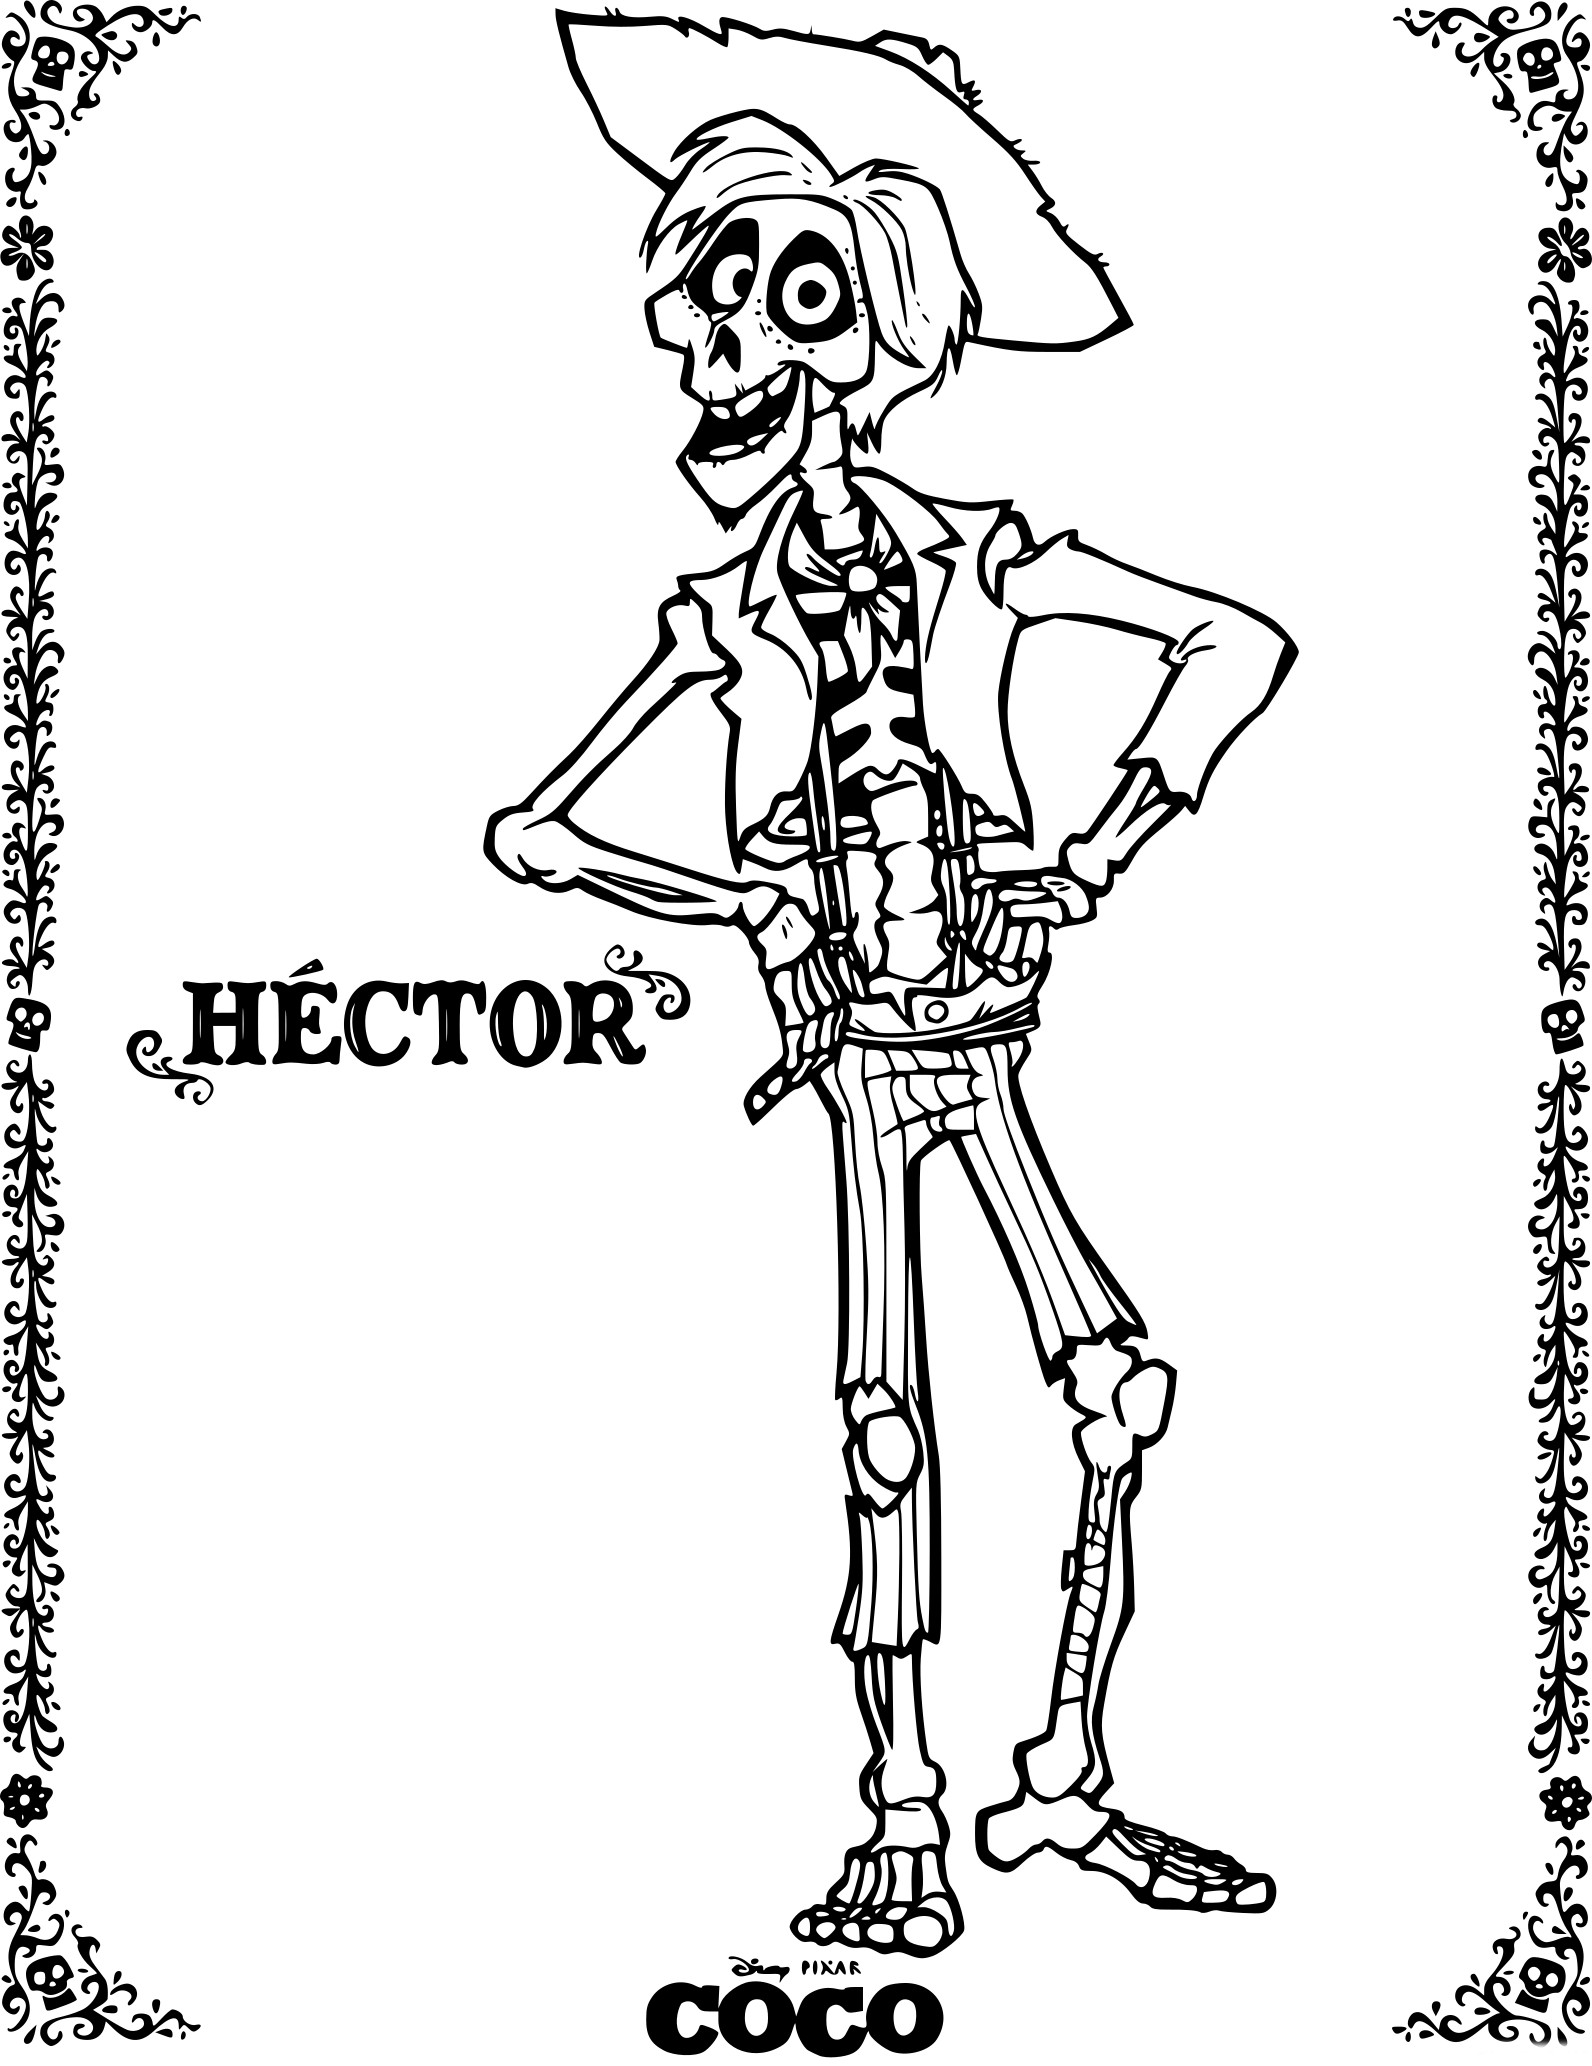 Coloring Pages Coco Guitar Printable Homeremedies4youclub